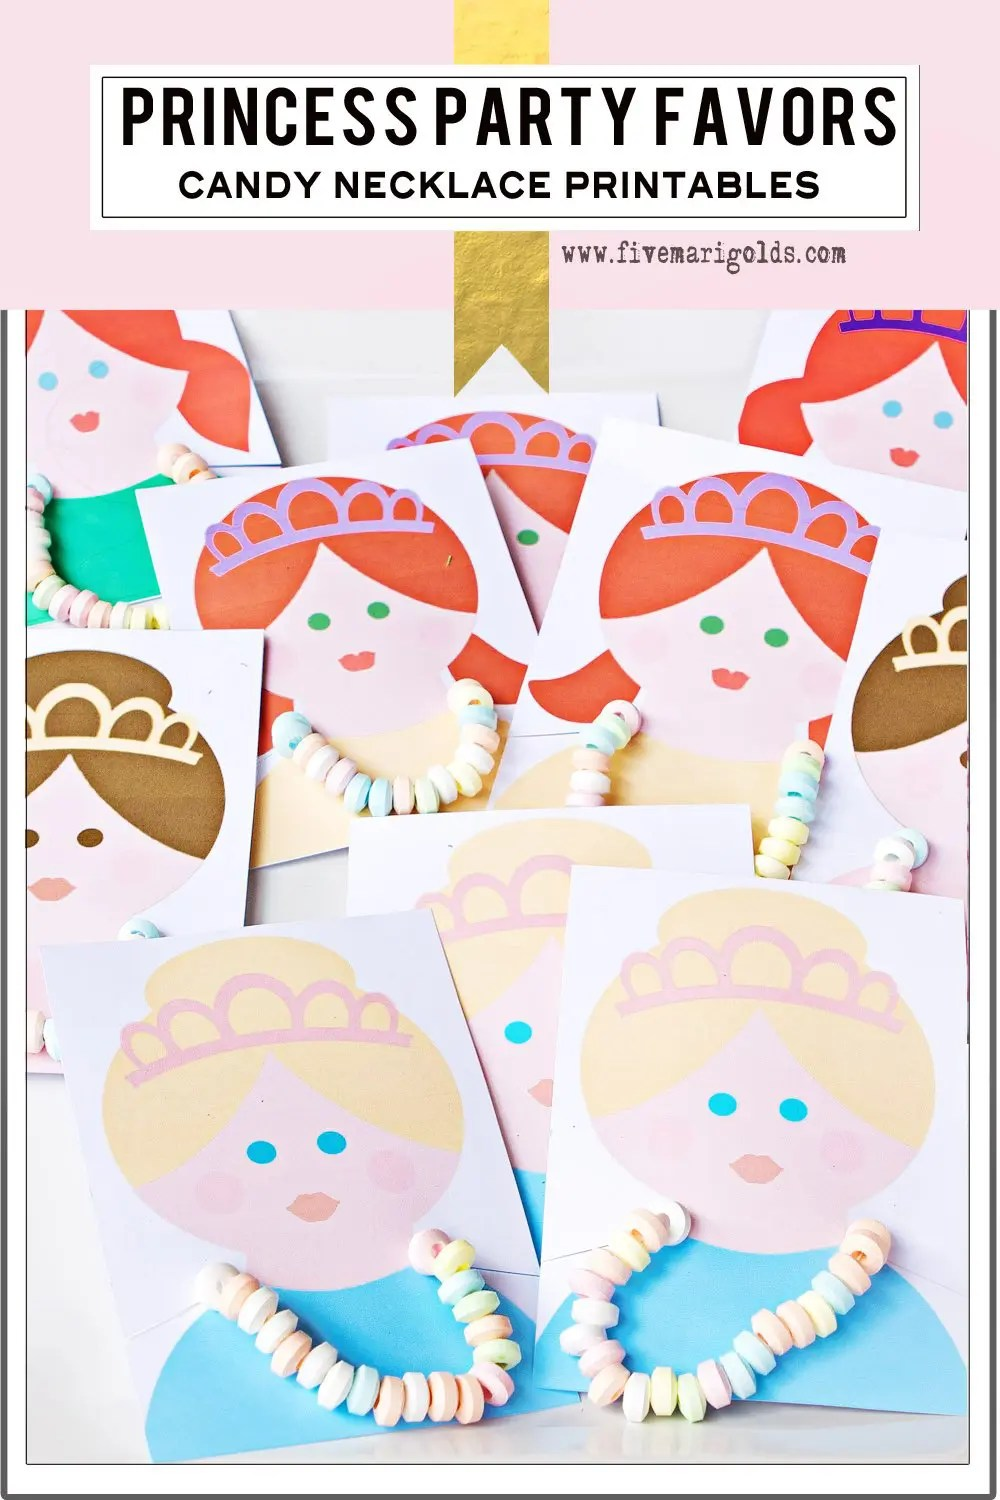 These are so adorable! Printable candy necklace birthday party favor cards.